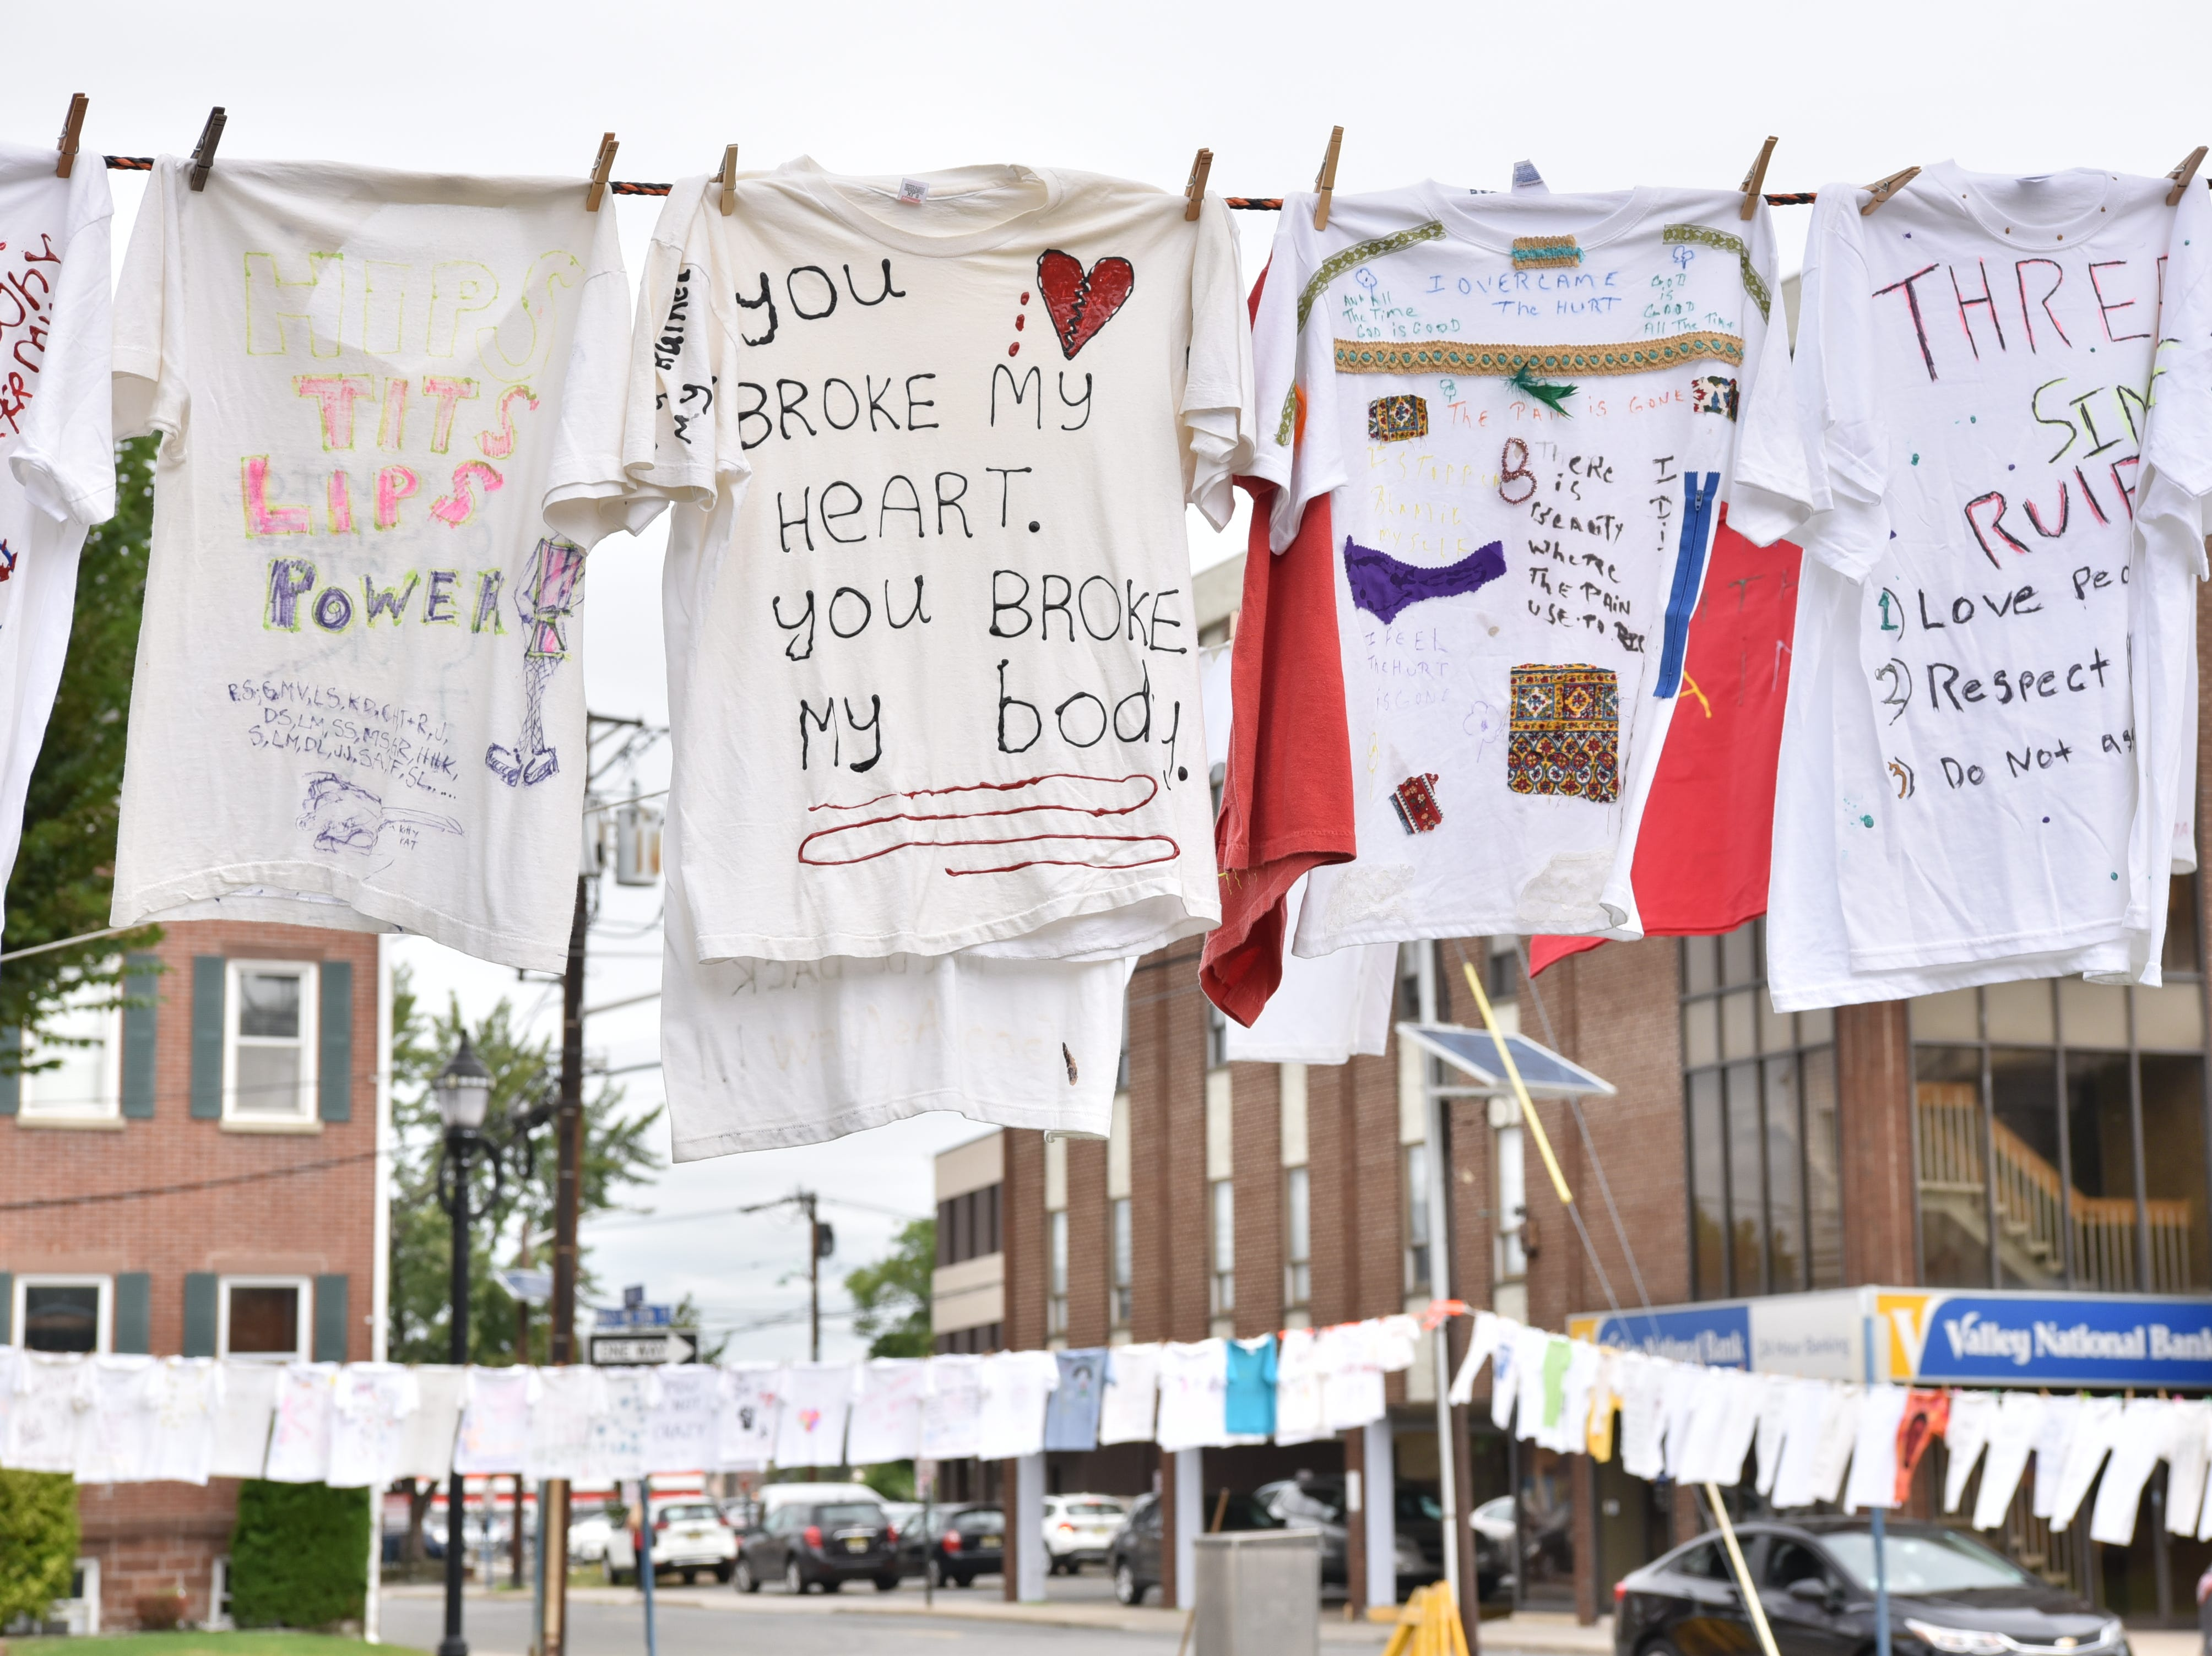 YWCA Bergen County healingSPACE host its 25th Anniversary Clothesline Project on the Green in Hackensack on Thursday, September 20.